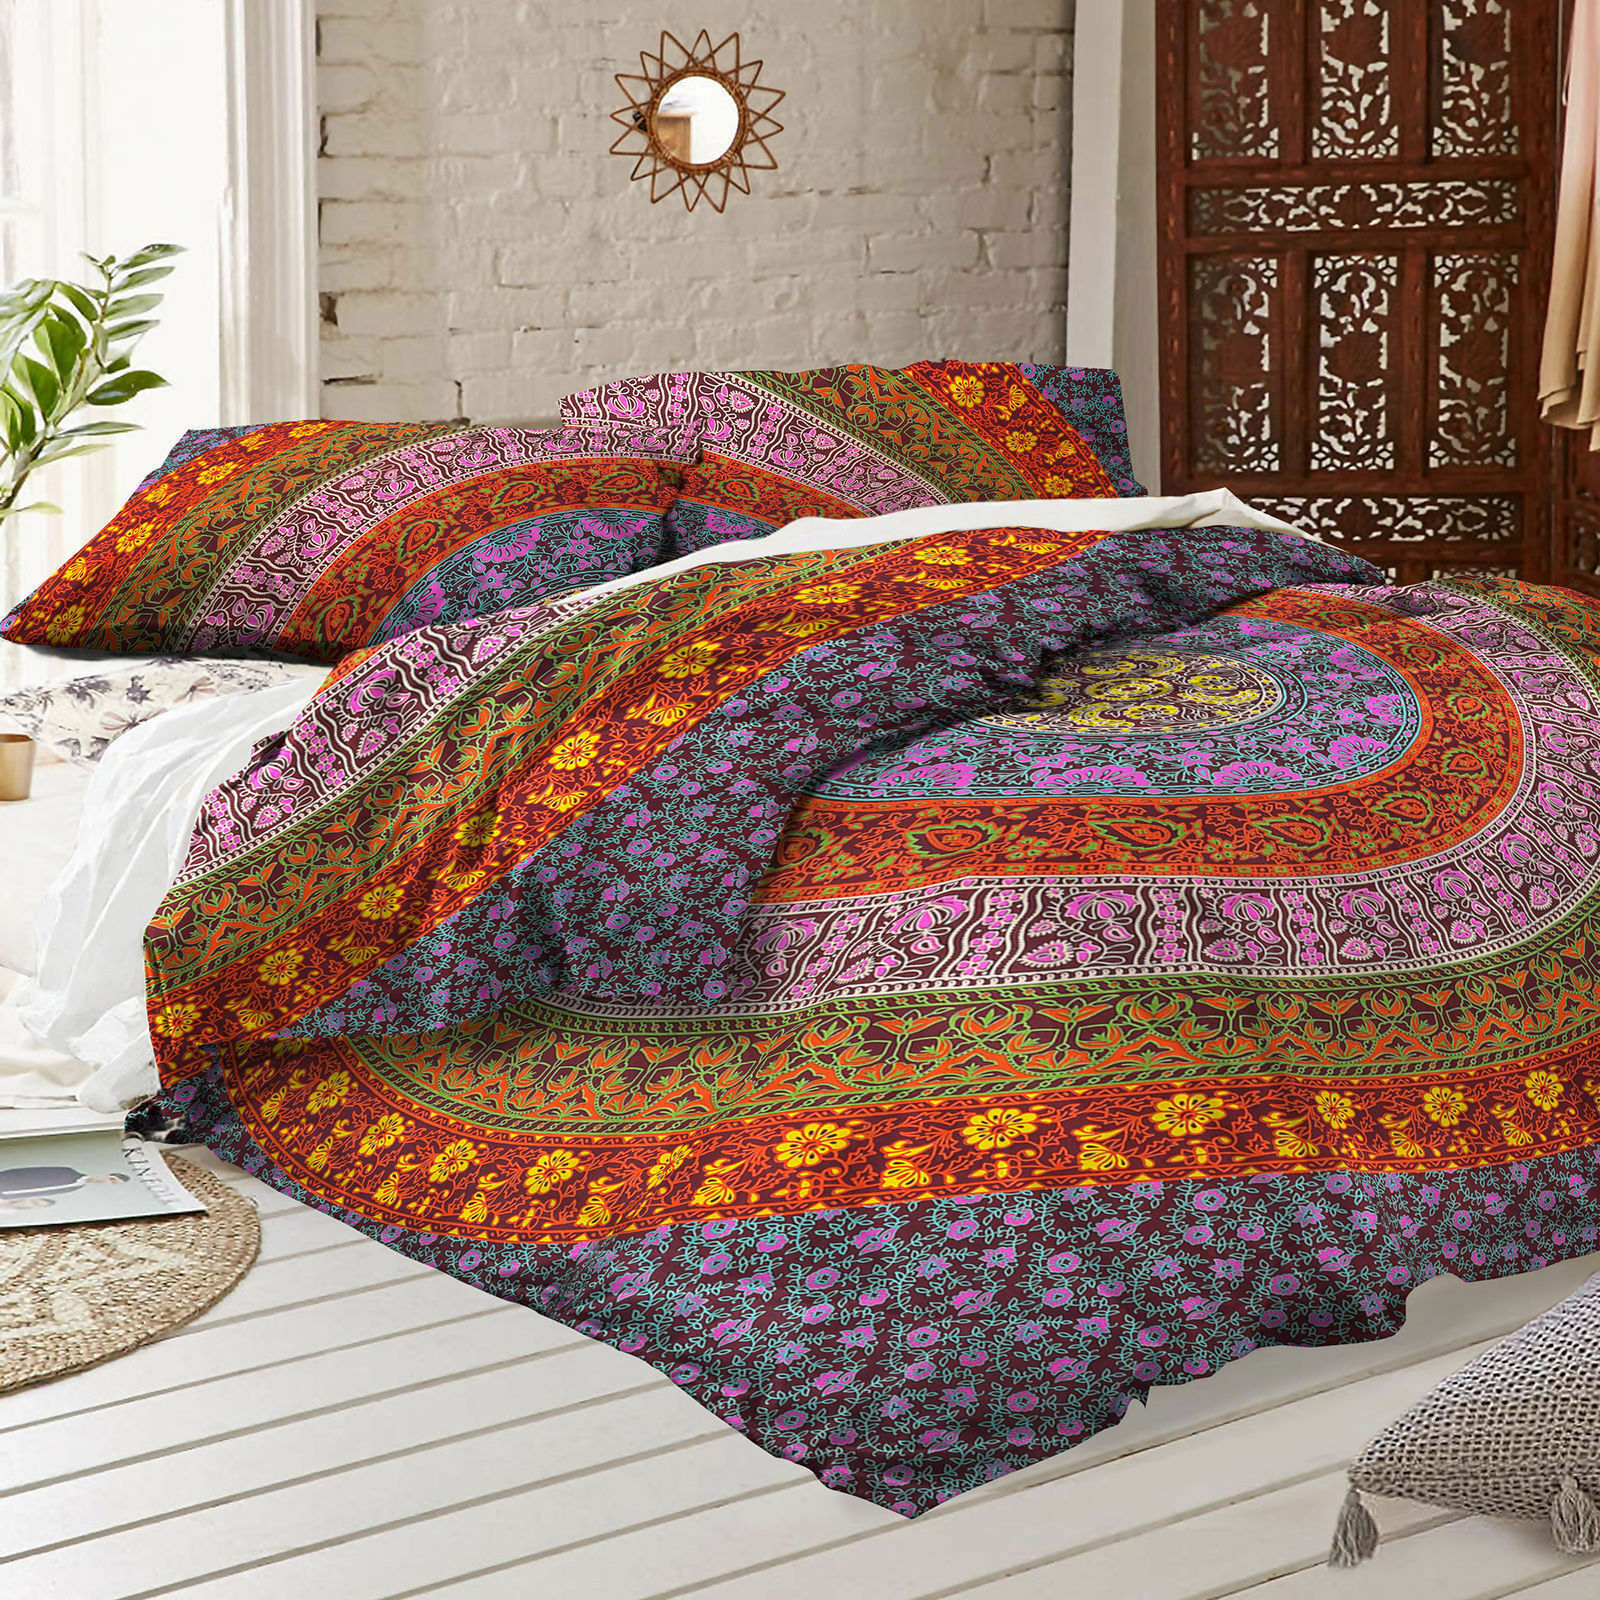 Mandala Indian Duvet Doona Cover Throw Boho Quilt Cover Bohemian Double Bedding